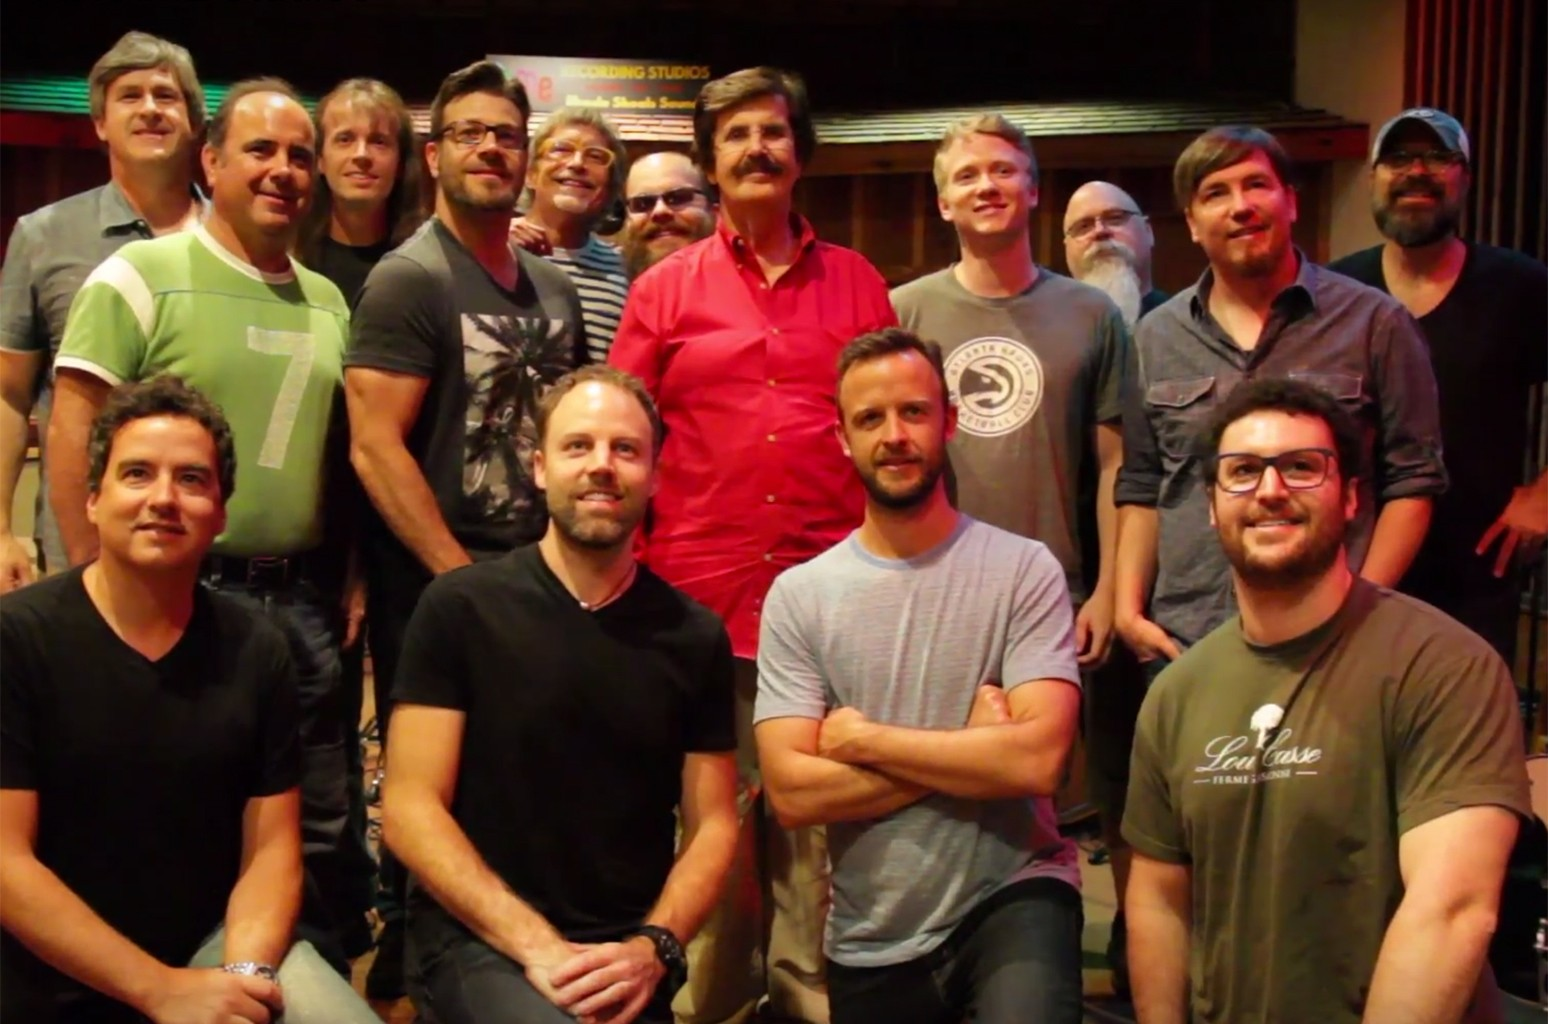 Third Day records their new album at FAME Studios in Muscle Shoals, Ala.